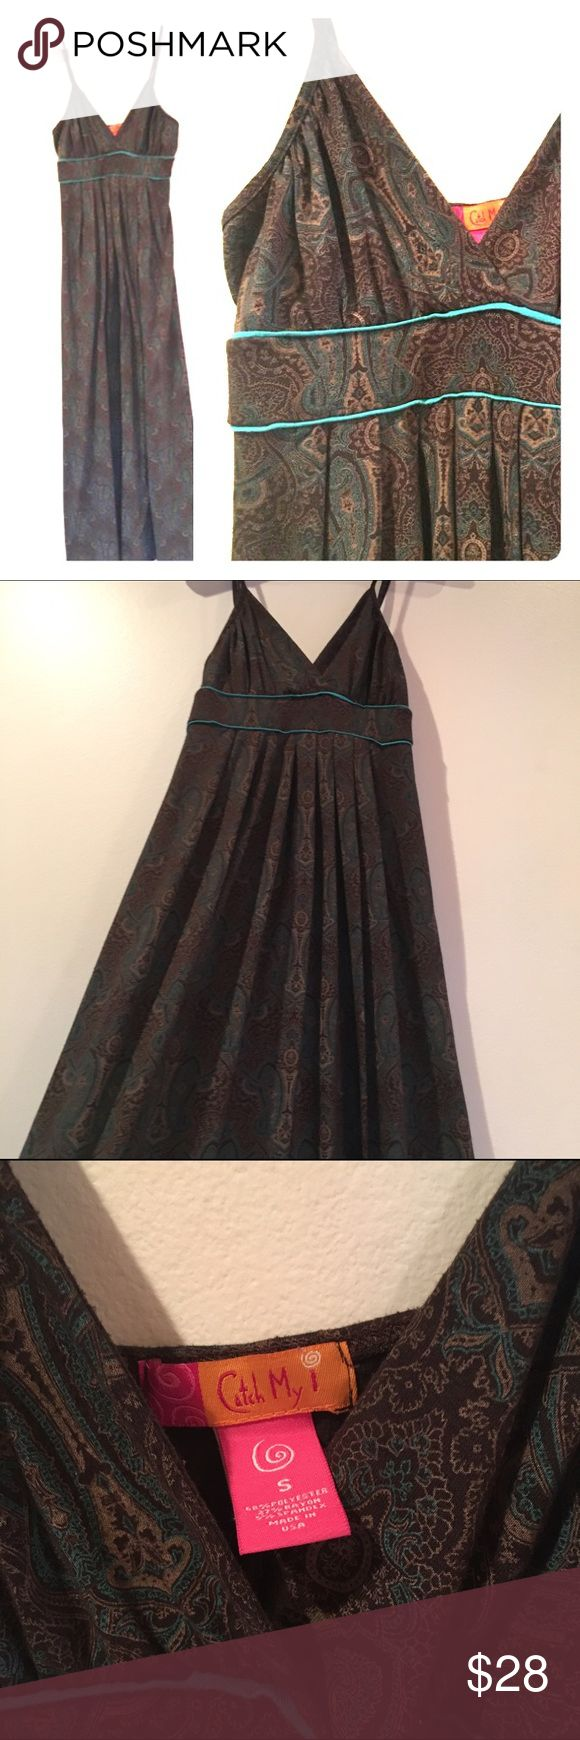 Elegant maxi dress Dark brown with tan and teal accents. Skirt gathered at bodice drapes beautifully and would work as a maternity dress. EUC catch my i Dresses Maxi